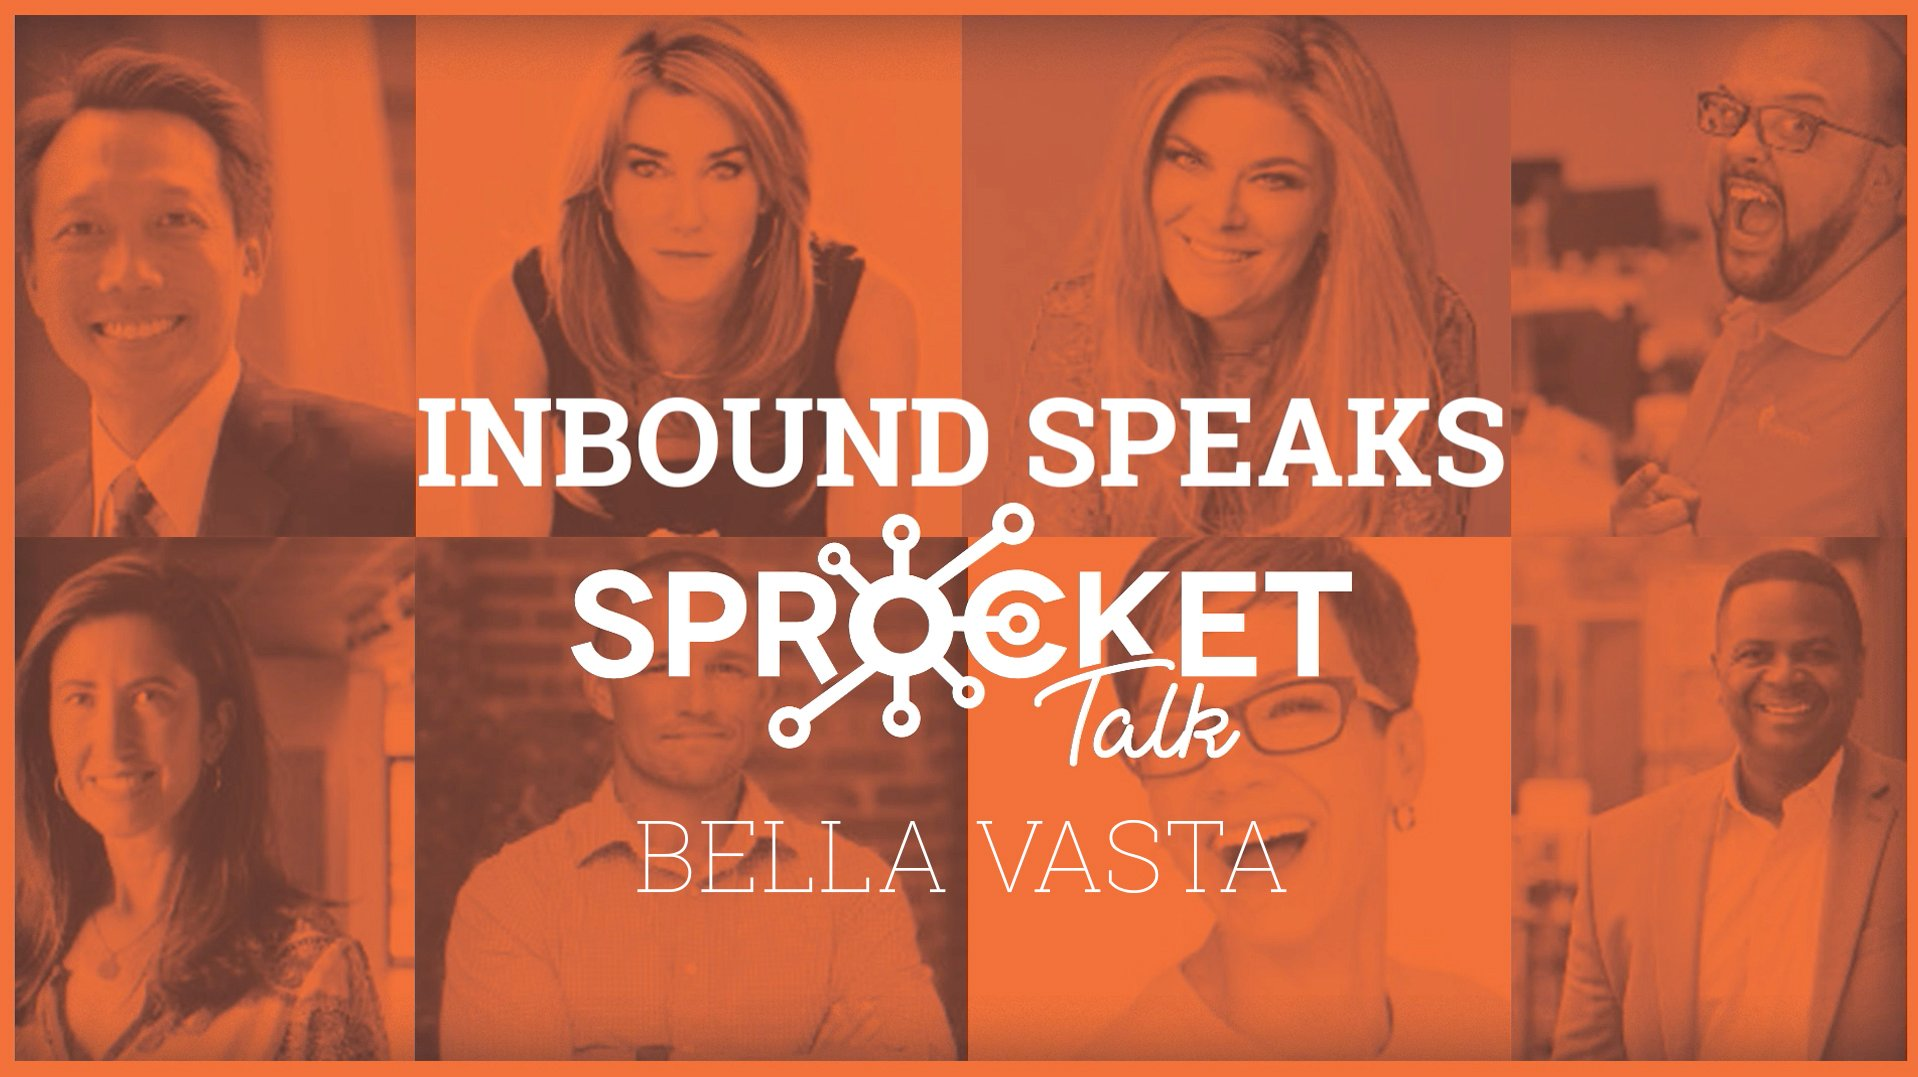 Bella Vasta How Facebook Groups Can Flood Your Inbound Marketing and Convert Into Revenue Inbound 19 Speaker